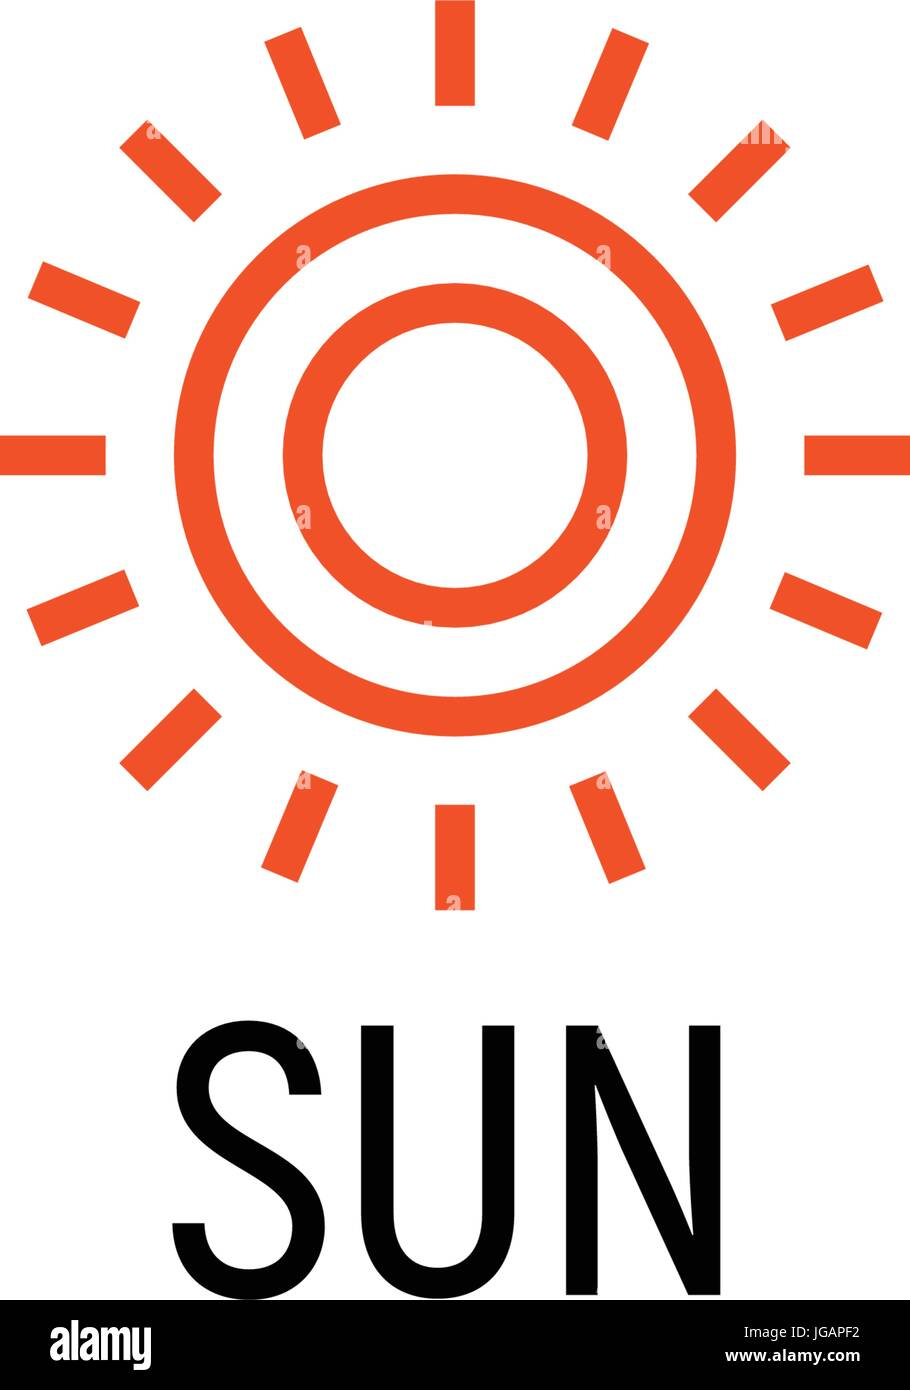 Sun orange color abstract simple icon. Outline sunny lineart shape. Summer day symbol and vector logo. - Stock Vector